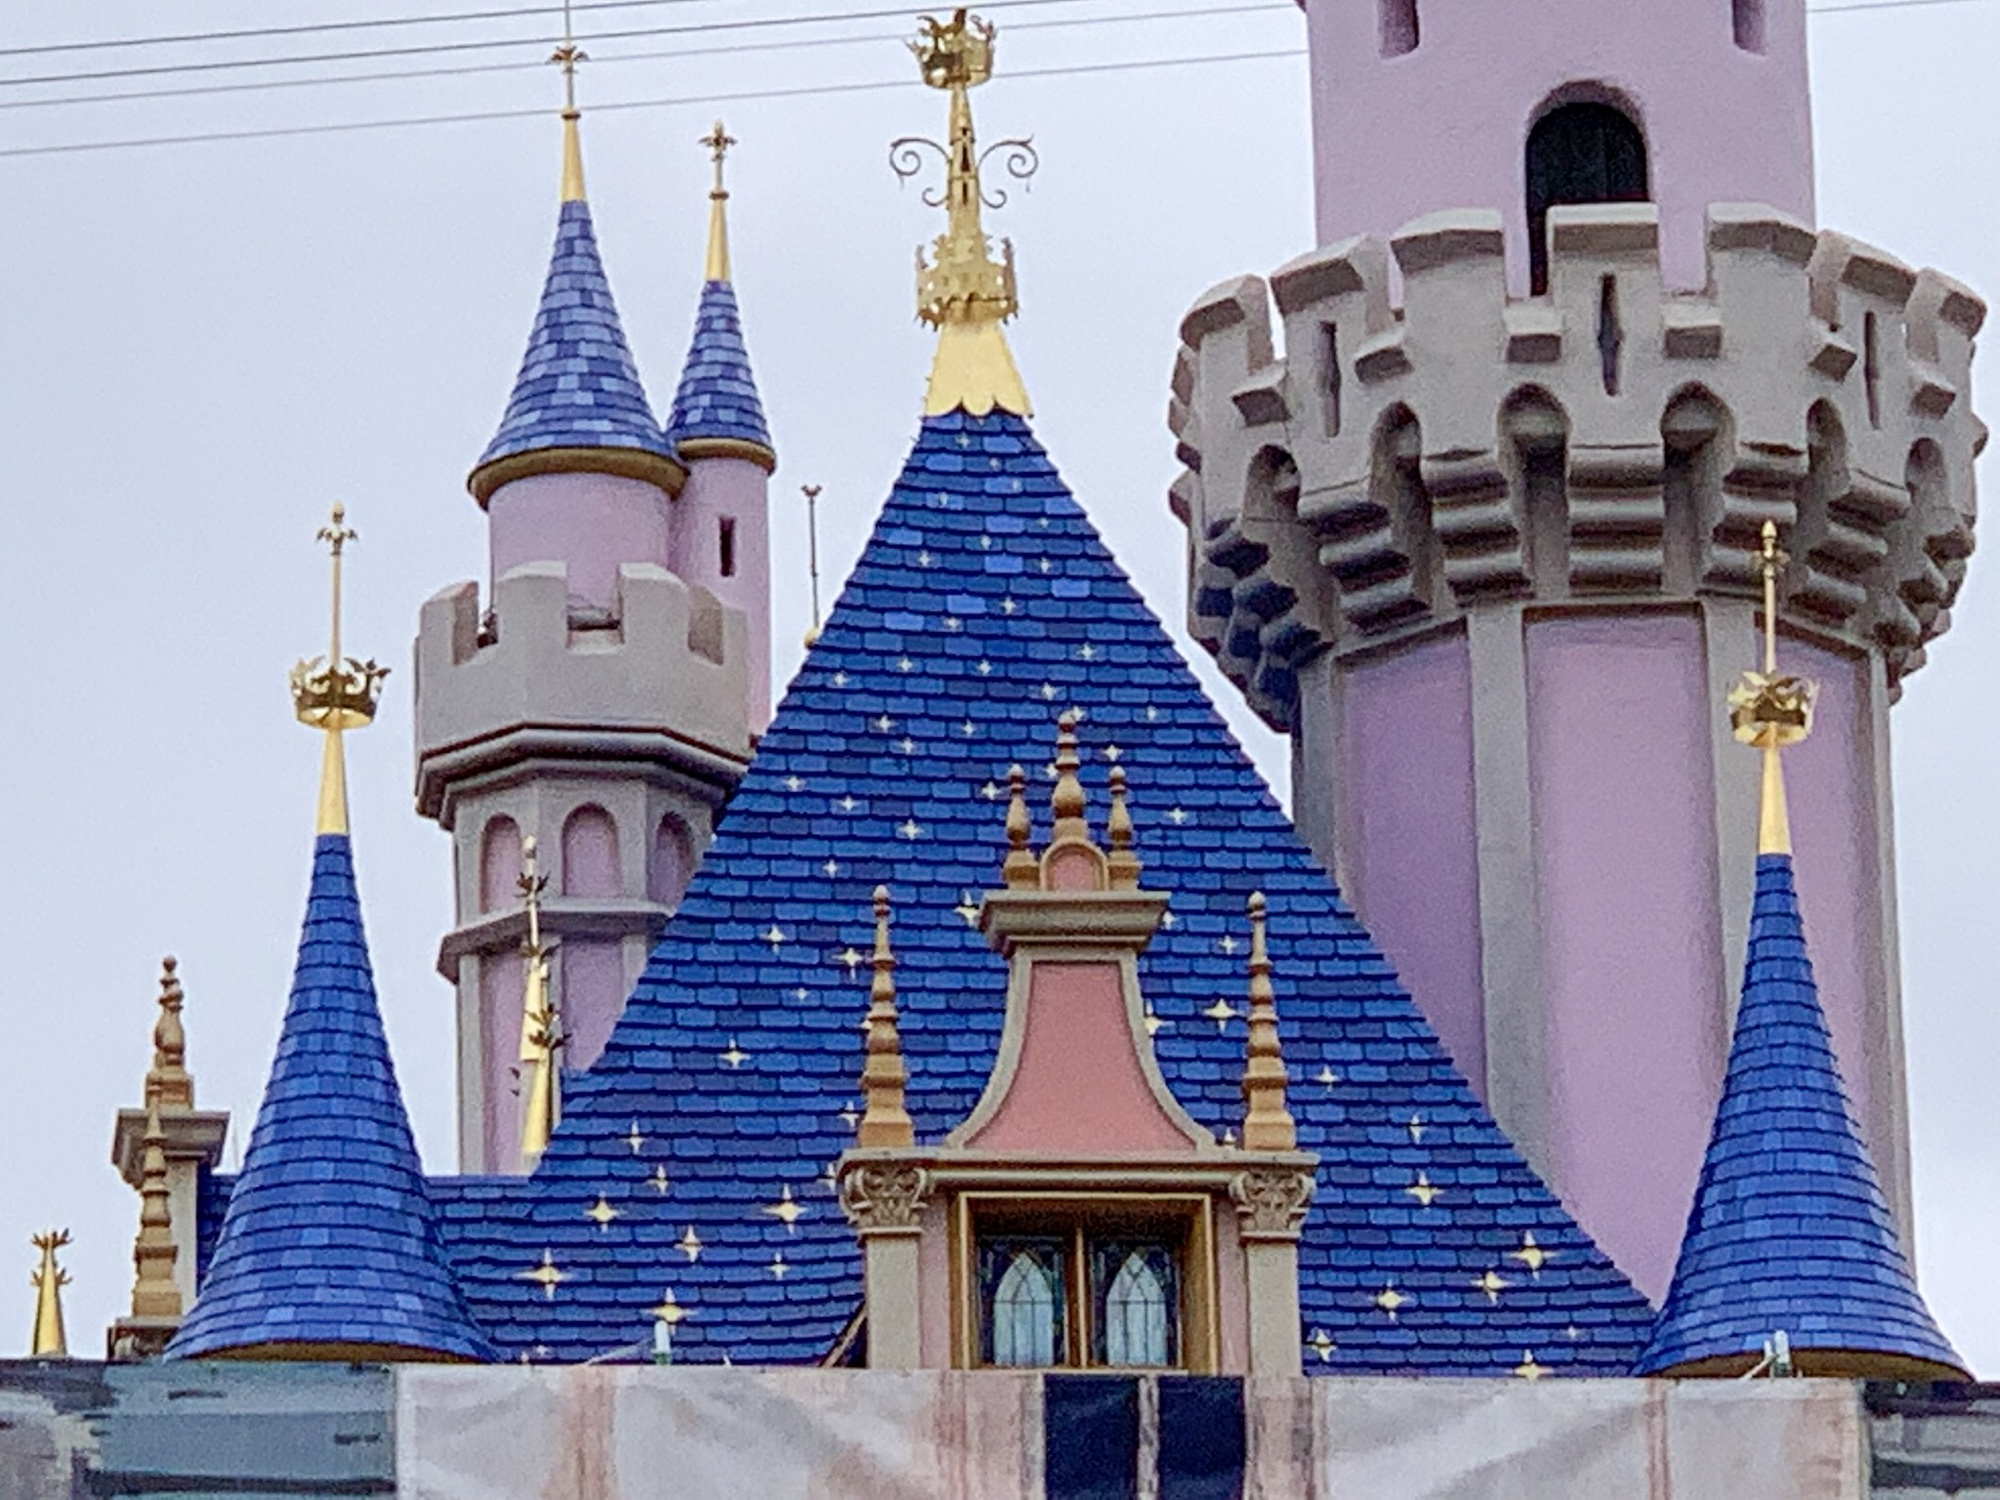 More Spires and New Look Revealed for Sleeping Beauty Castle in Disneyland